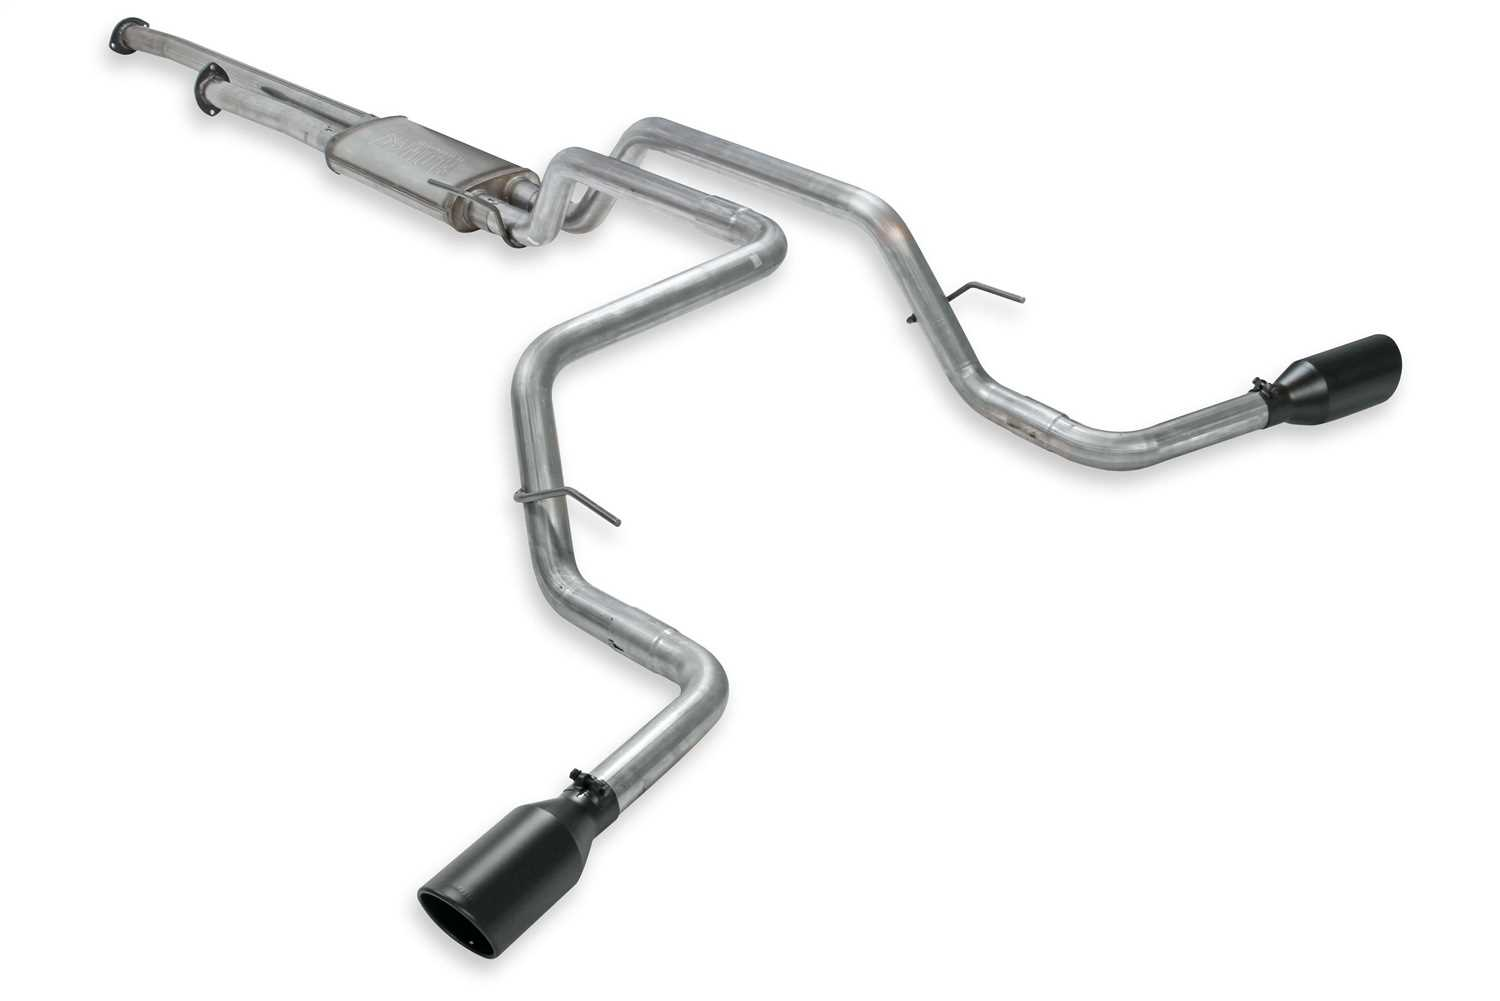 717664 Flowmaster FlowFX Cat-Back Exhaust System